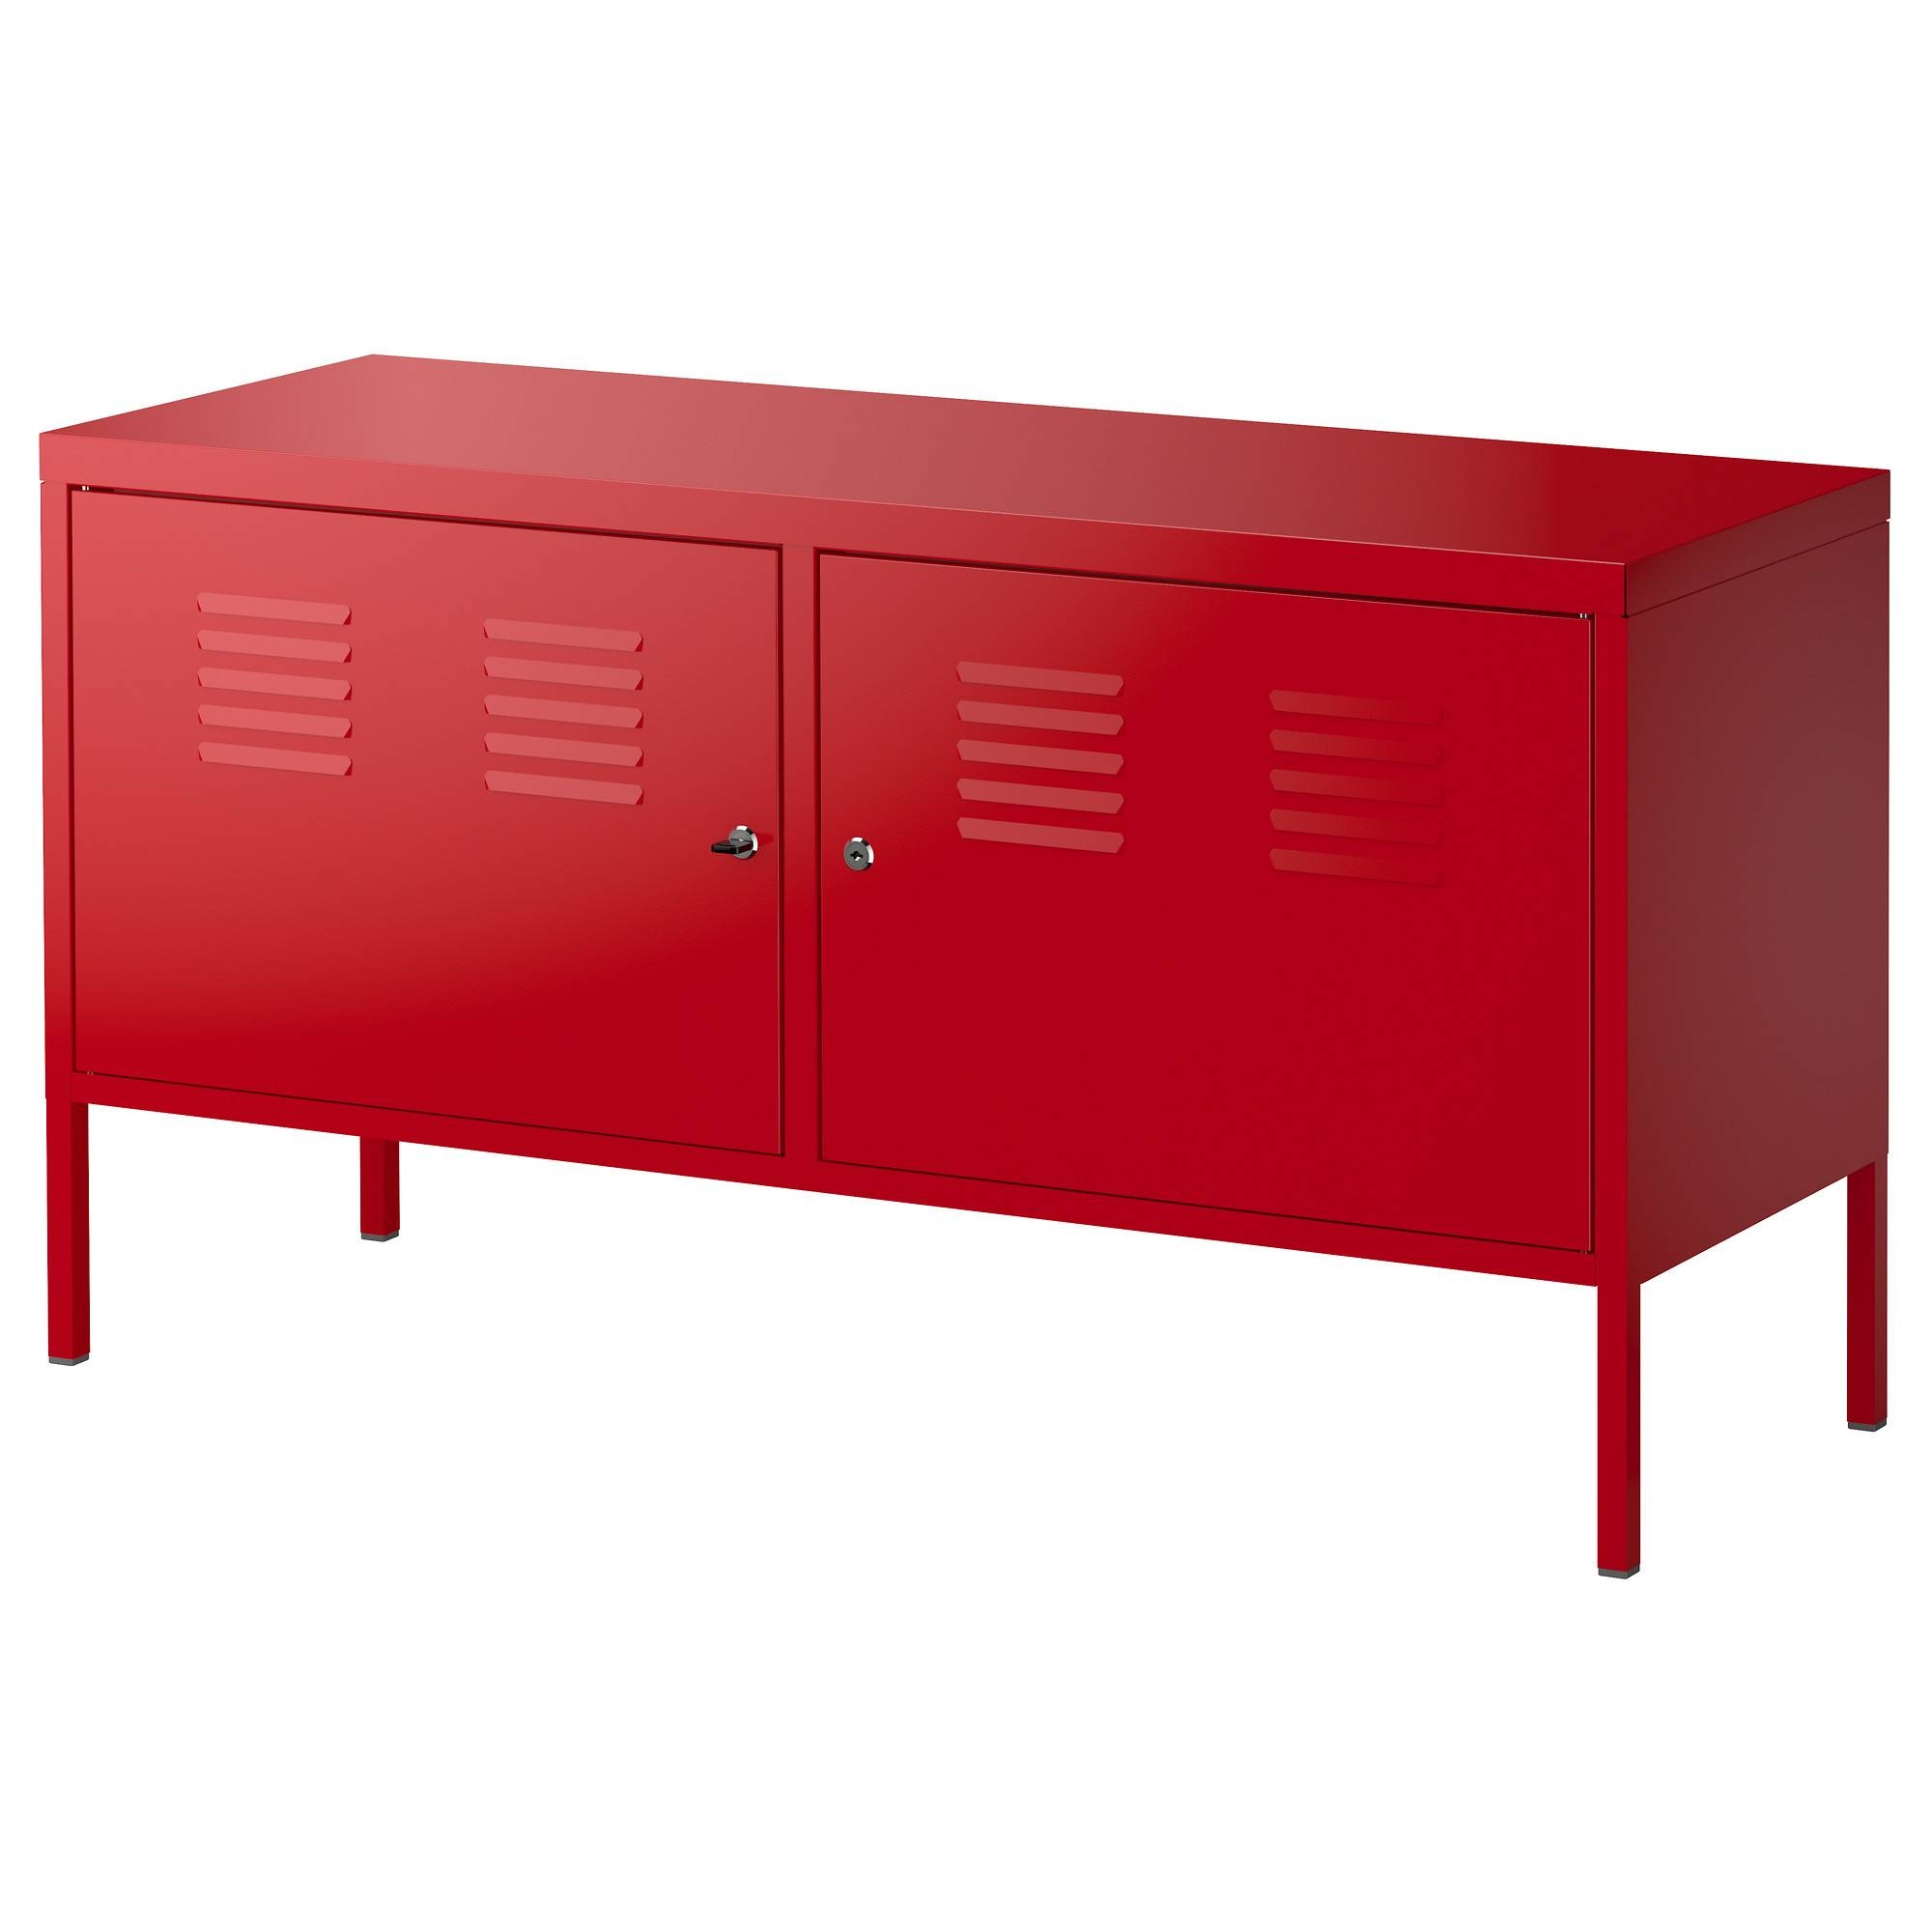 Ikea Ps Cabinet – Red – Ikea For Most Up To Date Ikea Red Sideboards (#8 of 15)